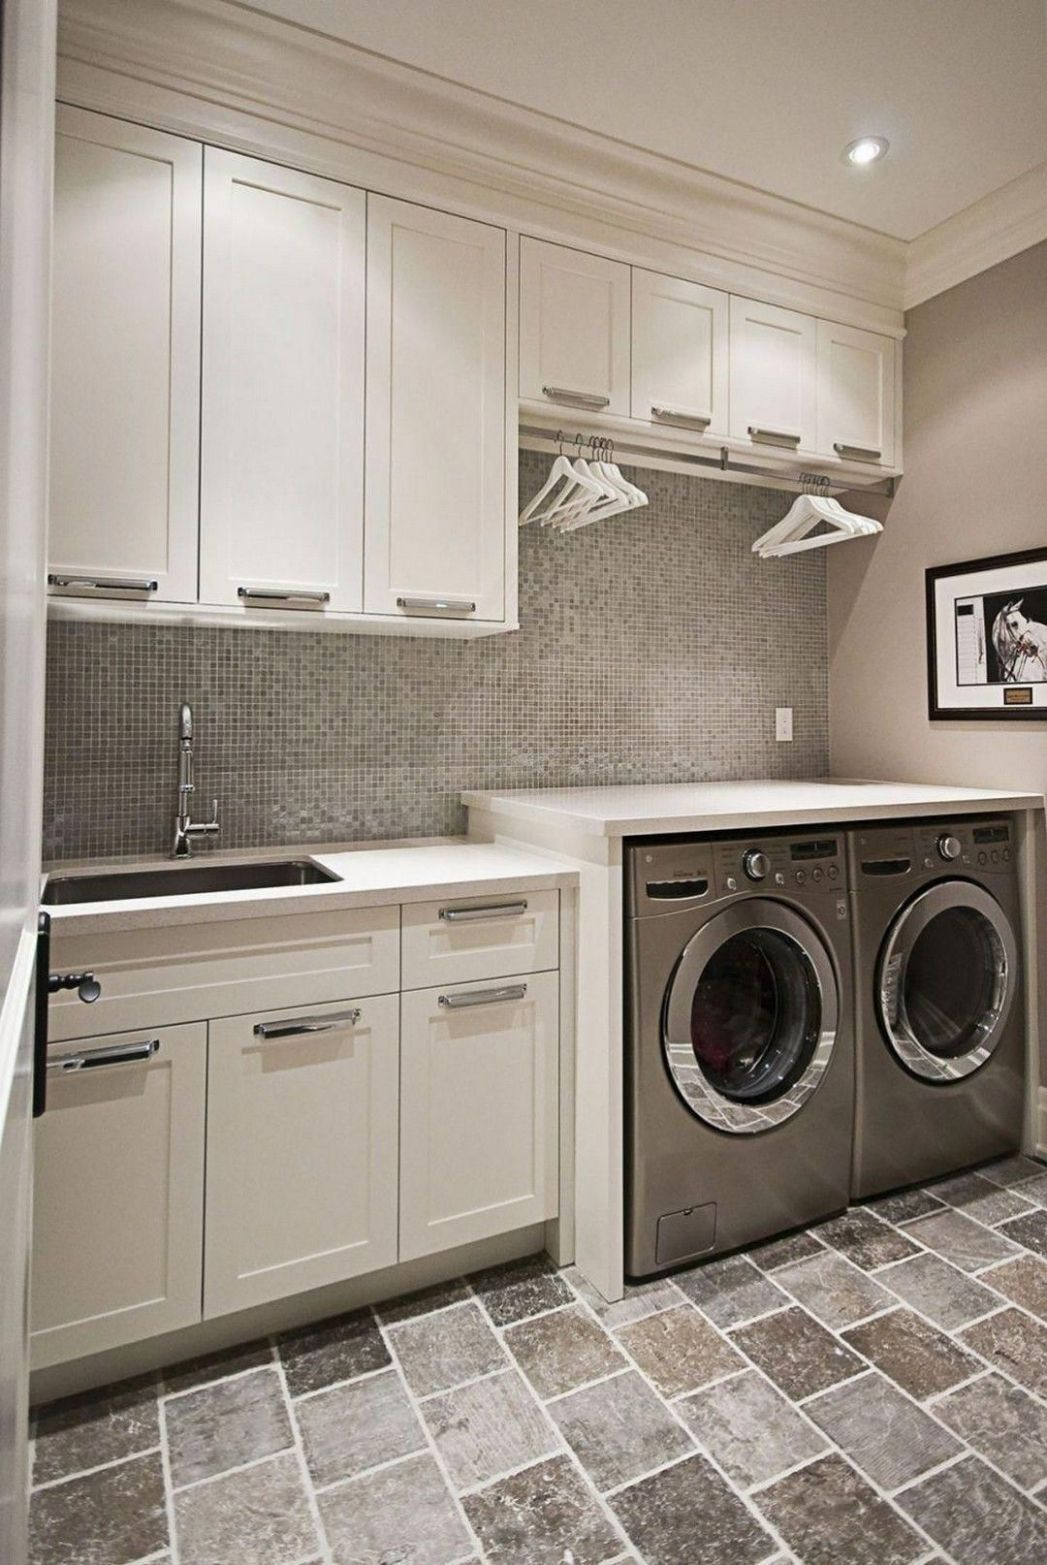 DIY Laundry Room Cabinet Storage Selves Ideas For Small Rooms ..